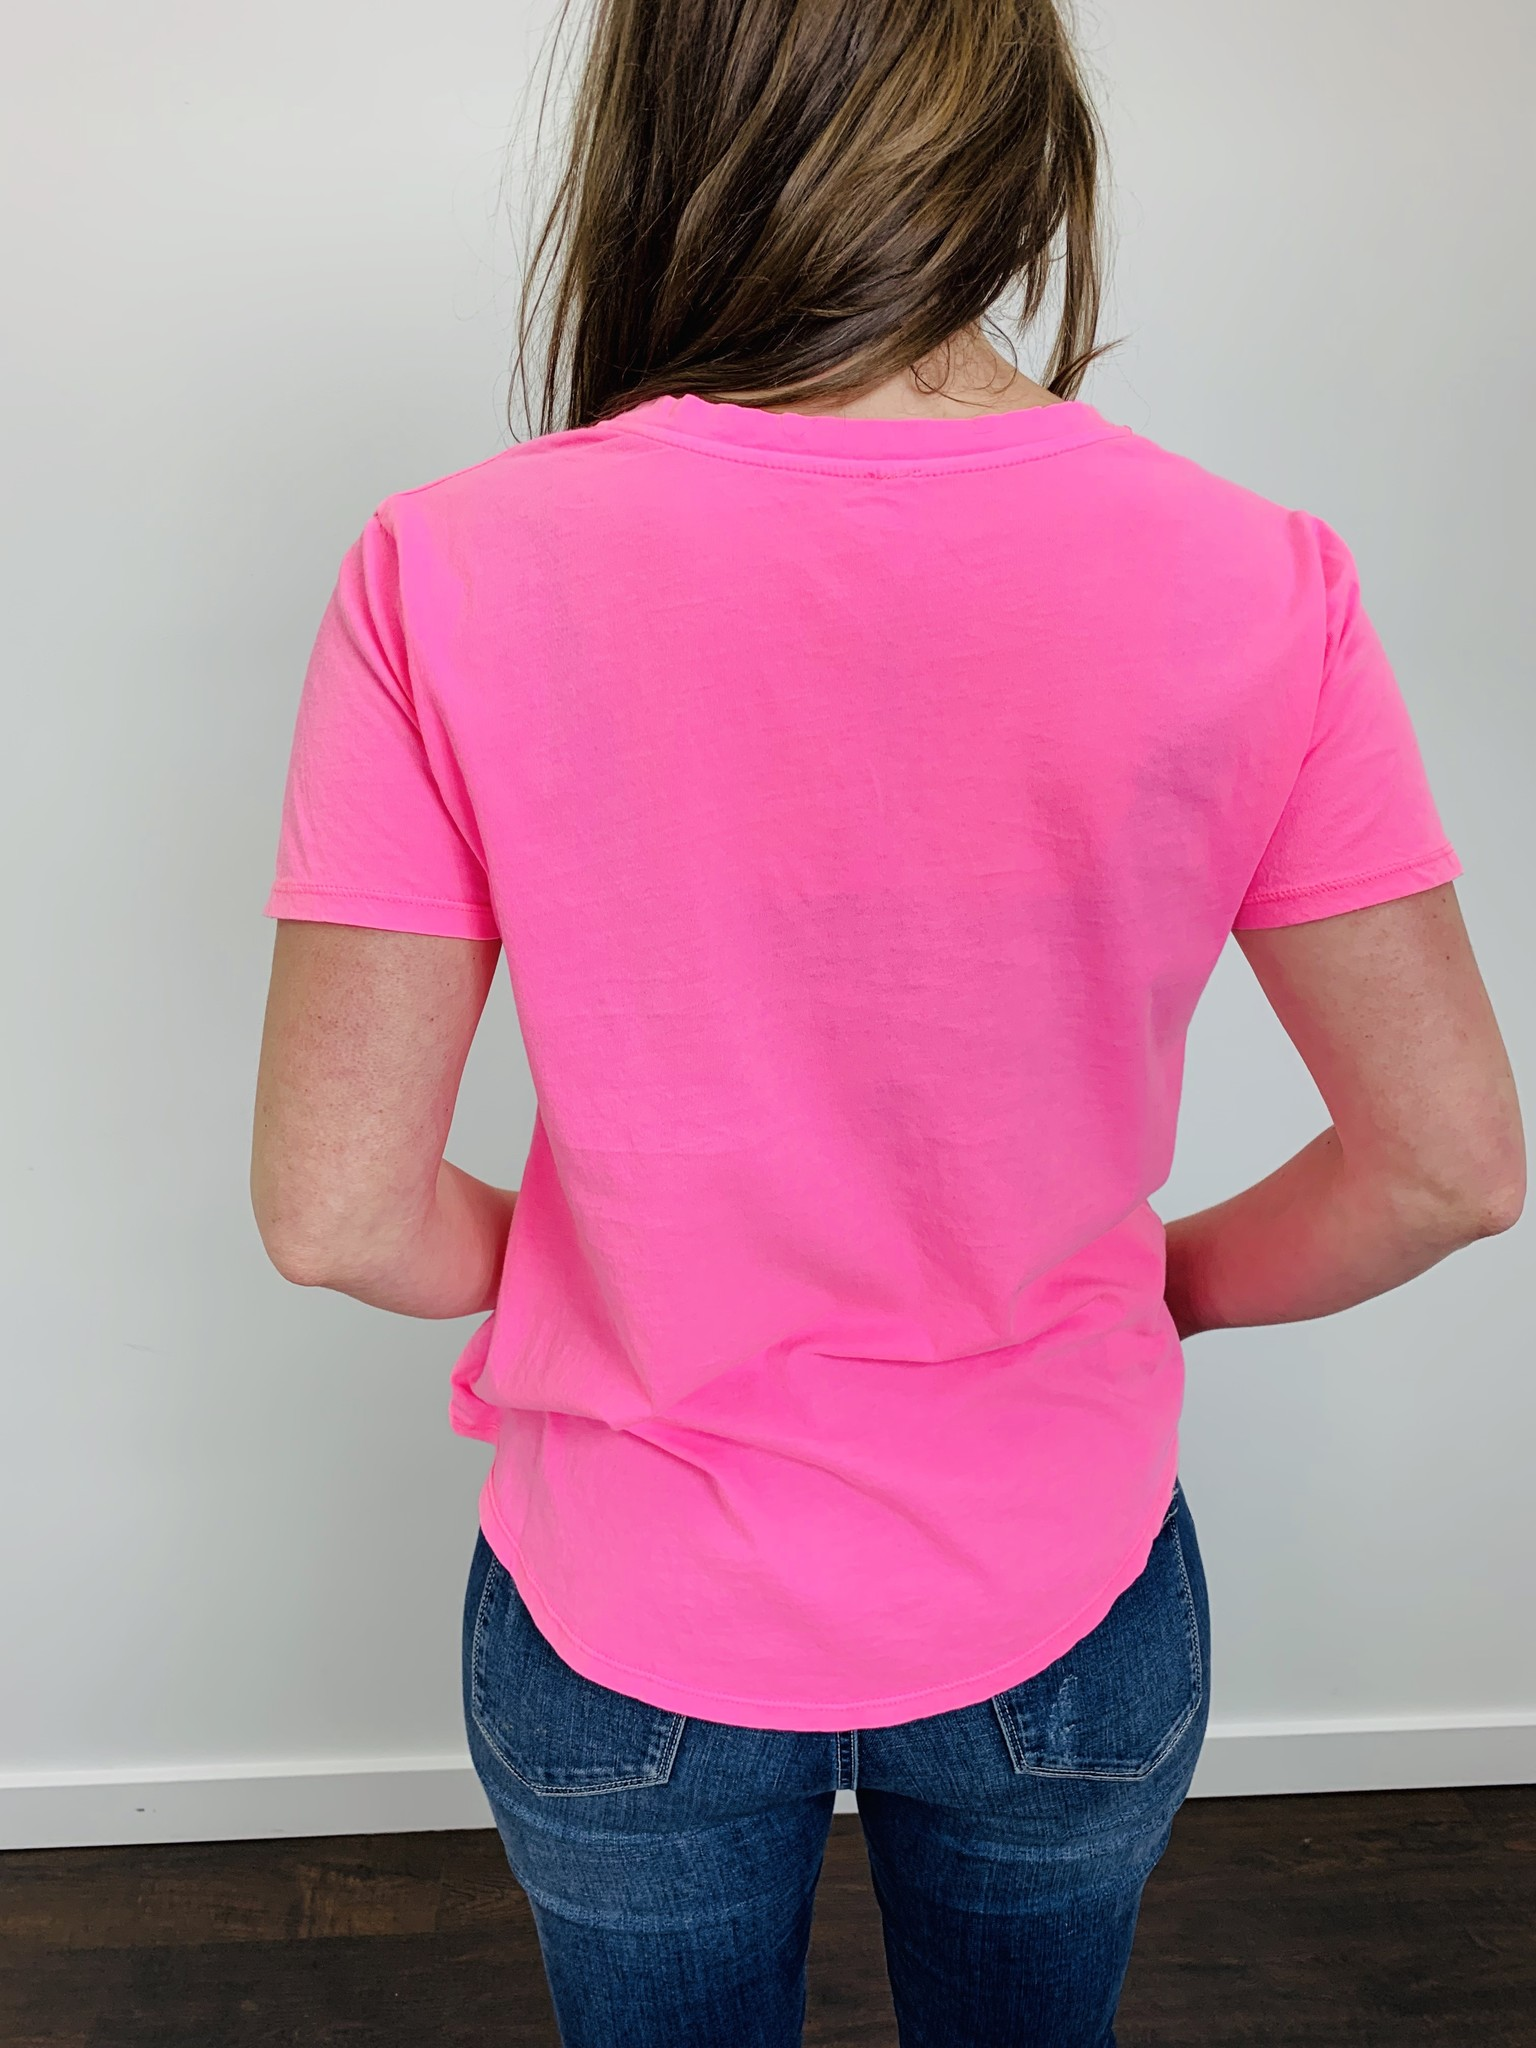 ZSupply The Neon V-Neck Tee in Neon Pink